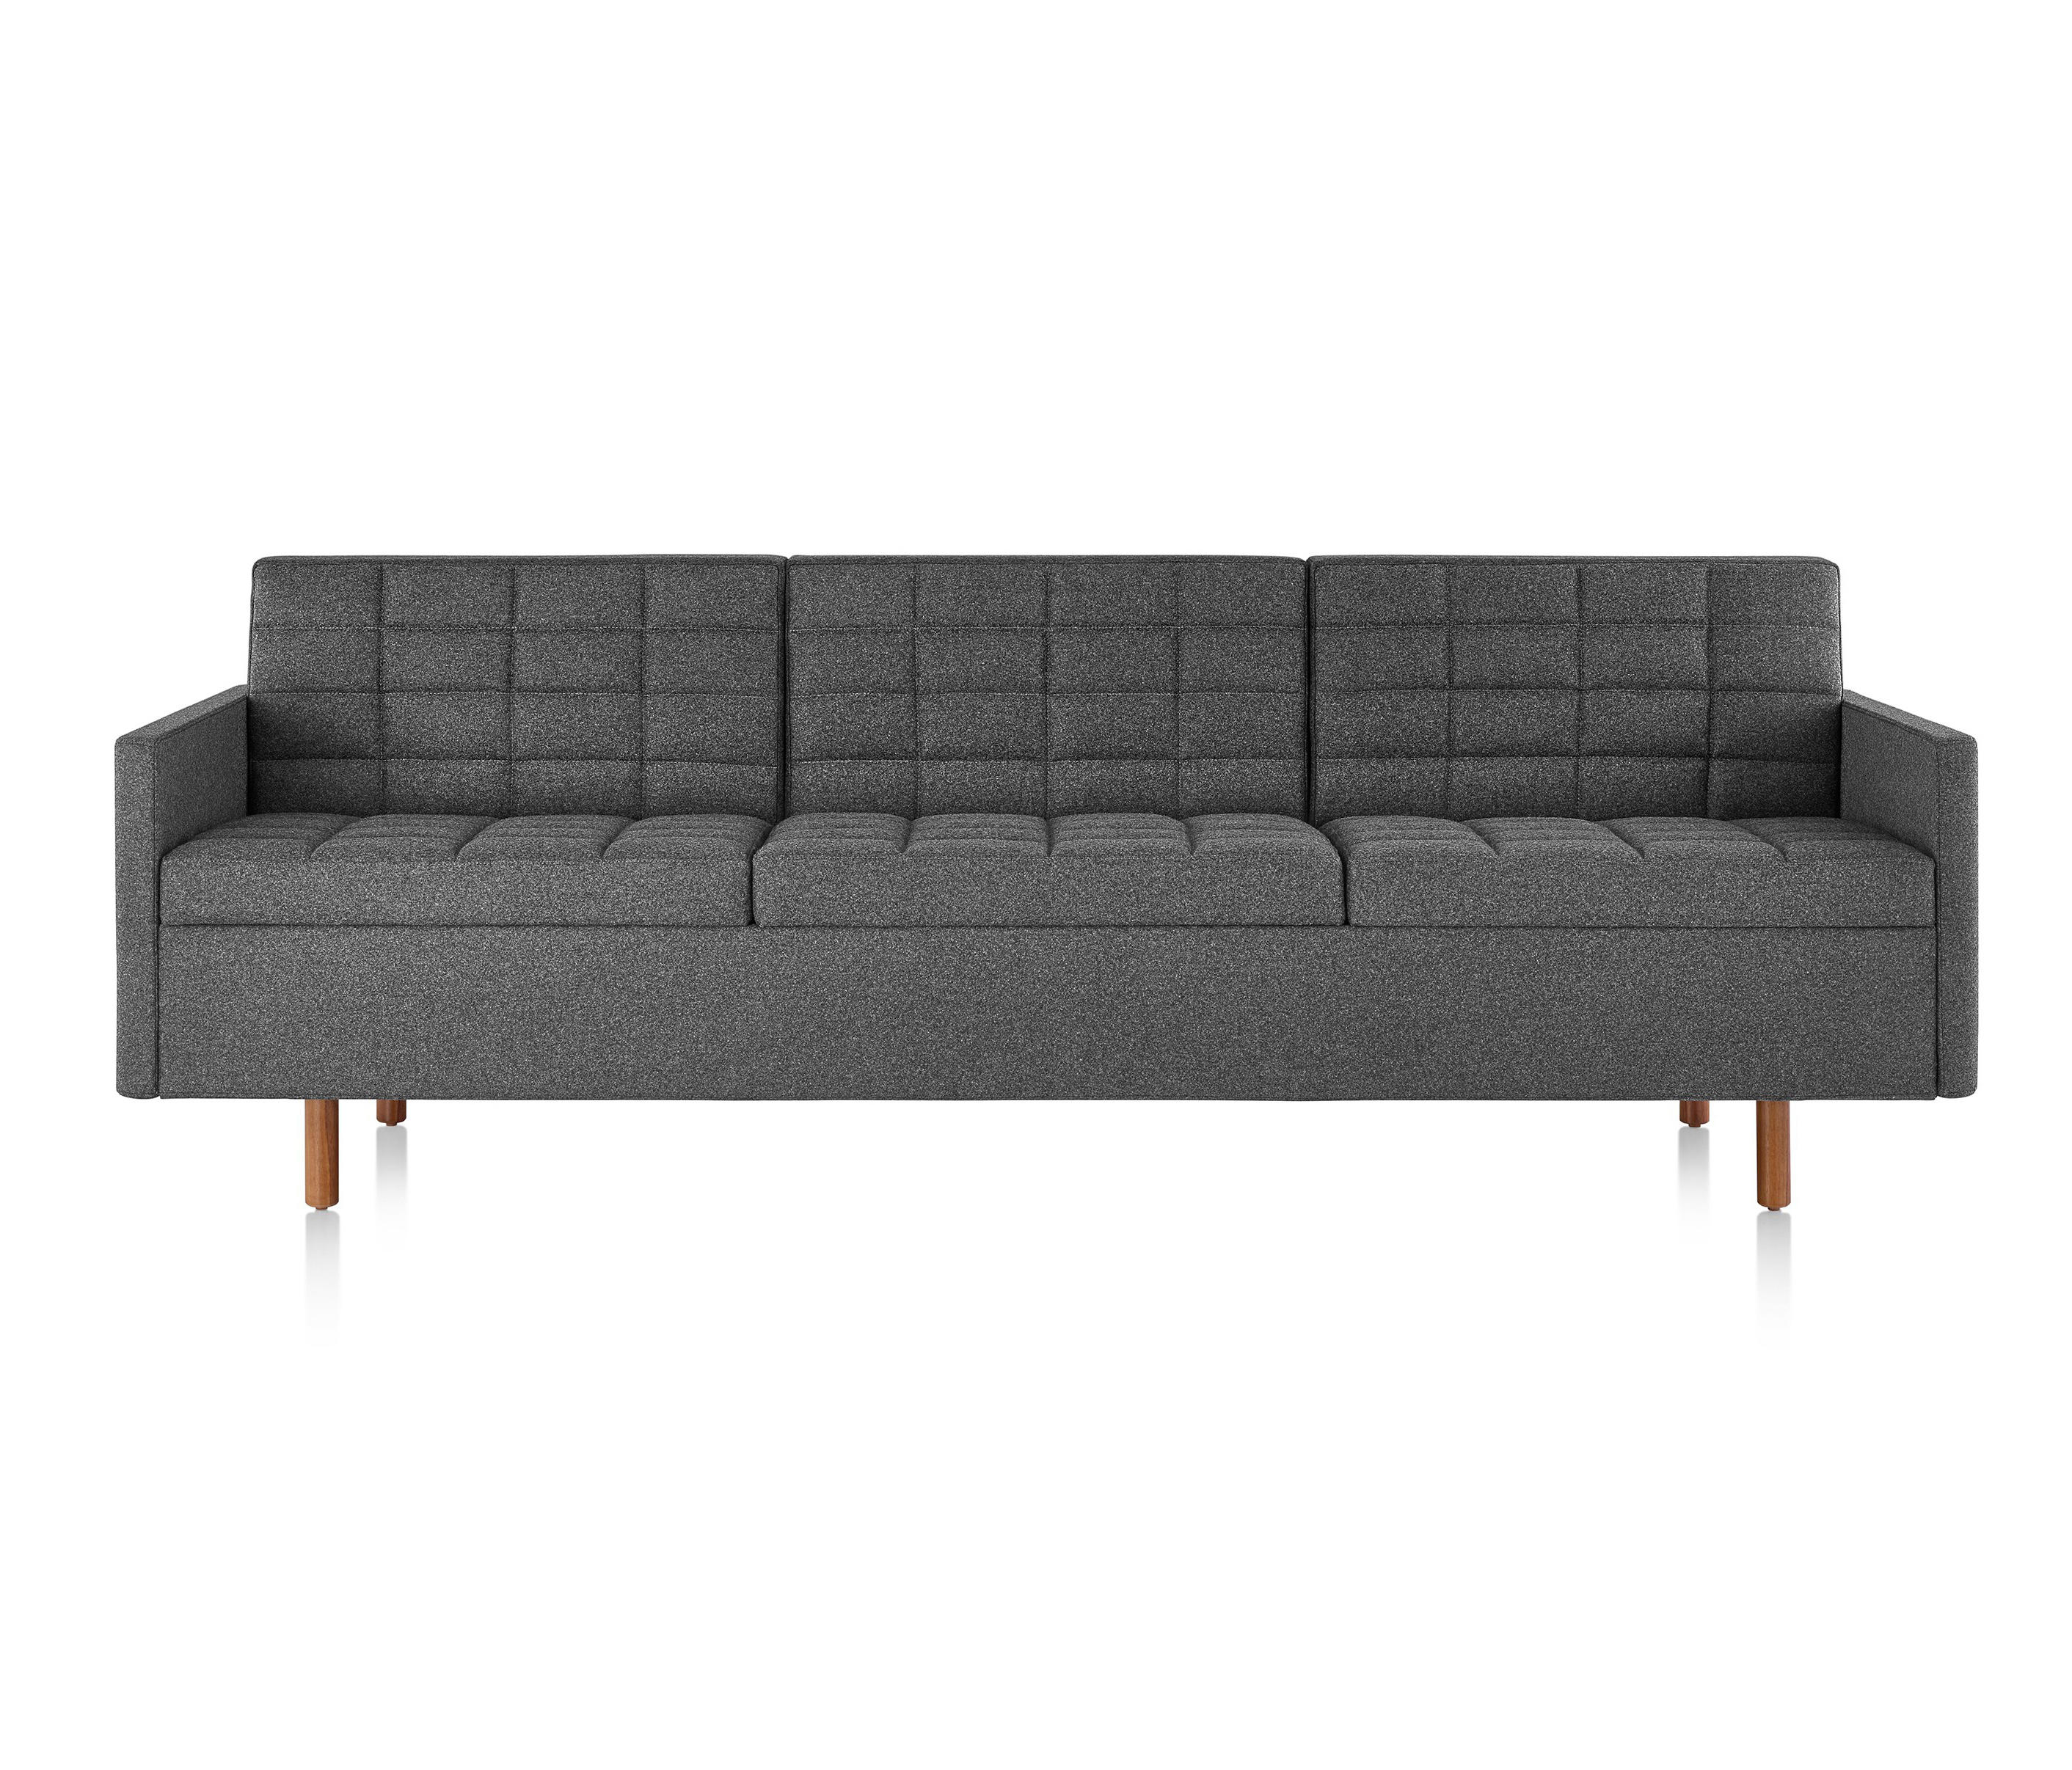 TUXEDO CLASSIC SOFA Lounge sofas from Herman Miller